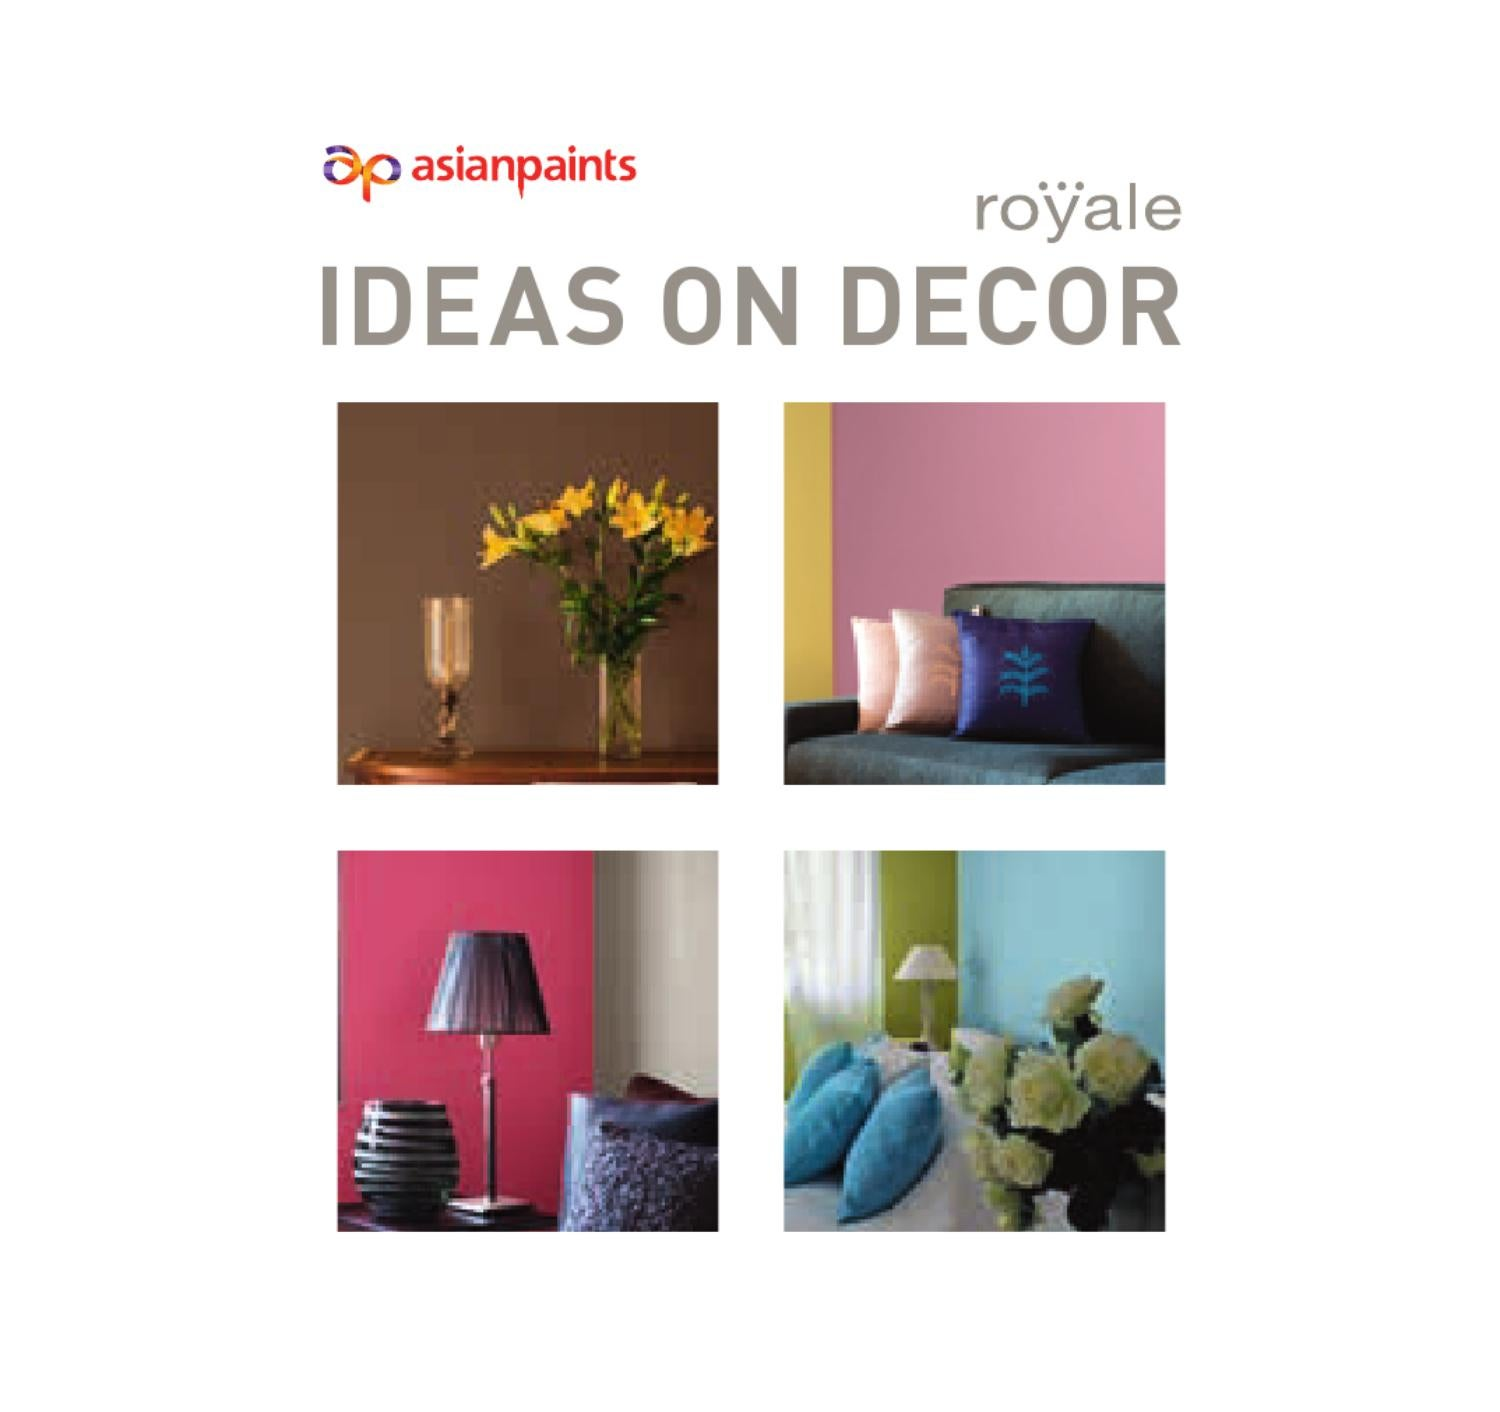 Ideas For Bedroom Design Issuu Ideas On Decor Book Web By Asian Paints Limited